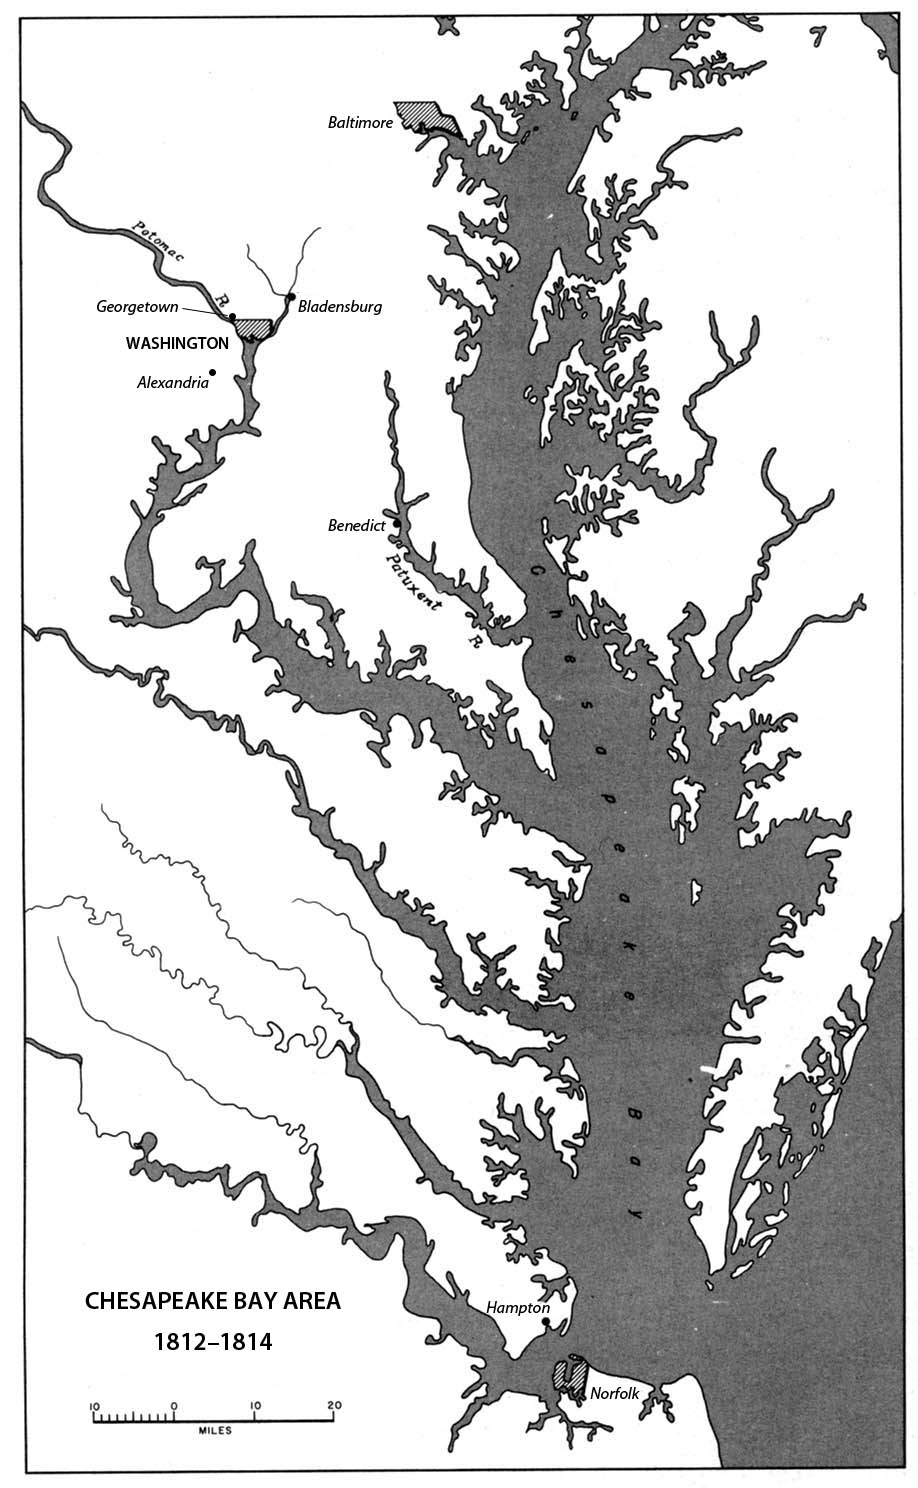 Chesapeake Bay area, 1812-1814